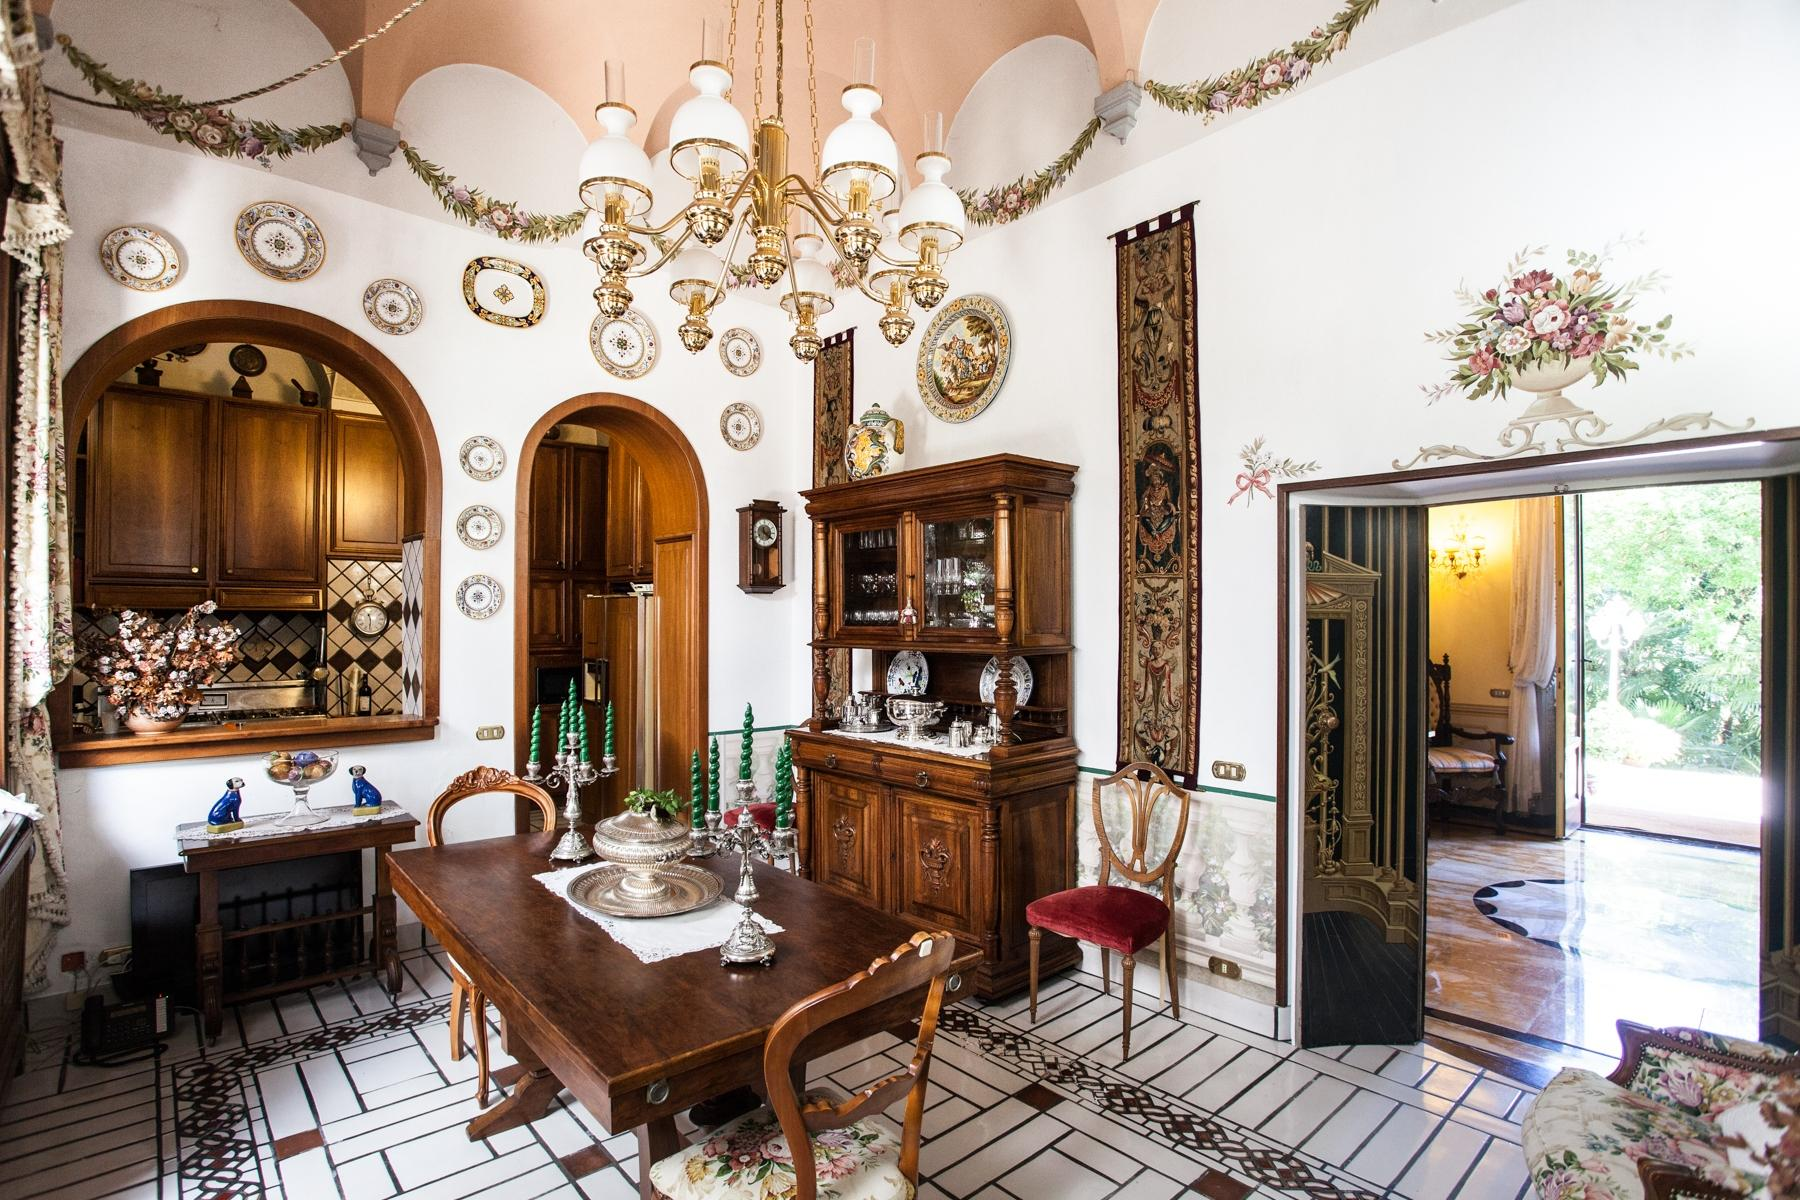 Charming historic villa with private park - 21